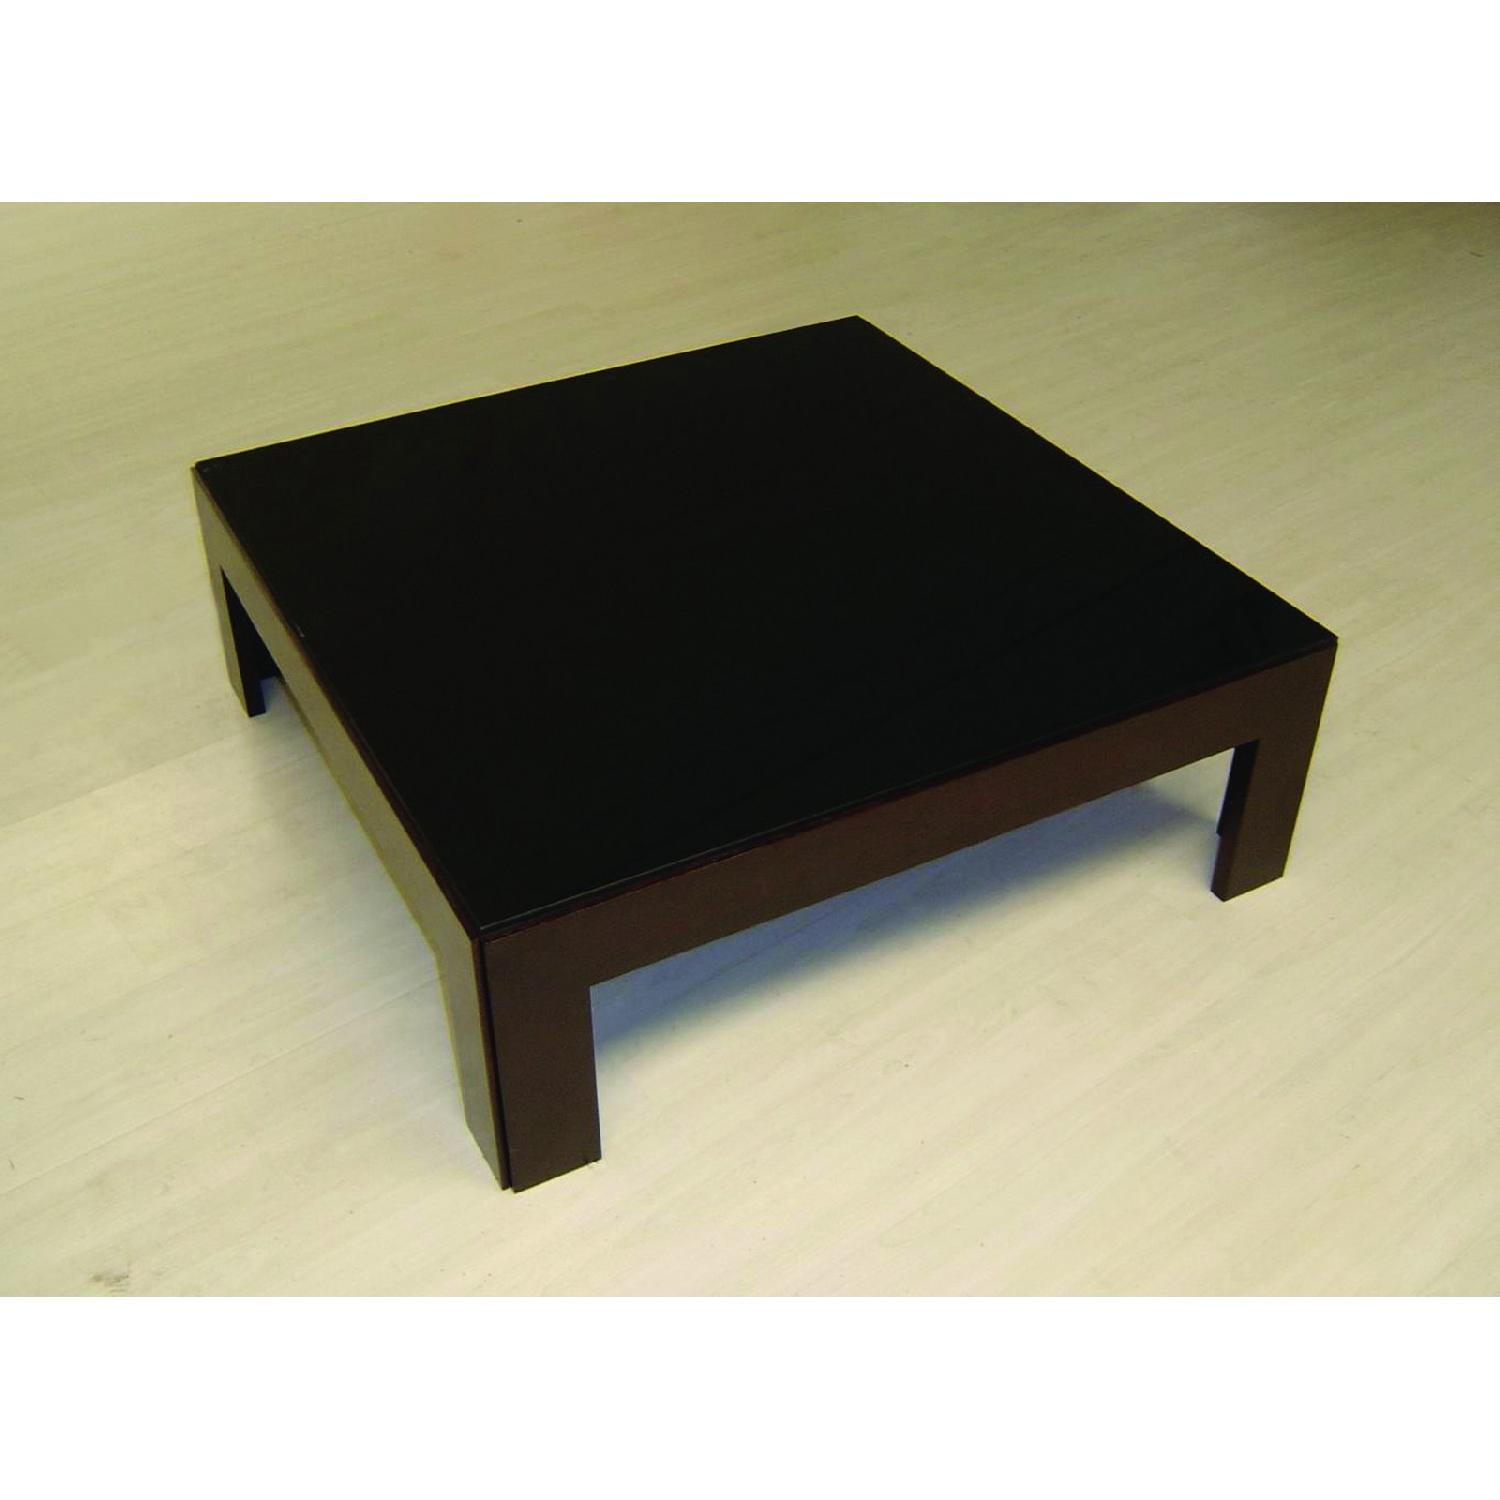 Modern Square Cocktail Table in Wenge Finish w/ Black Glass -2